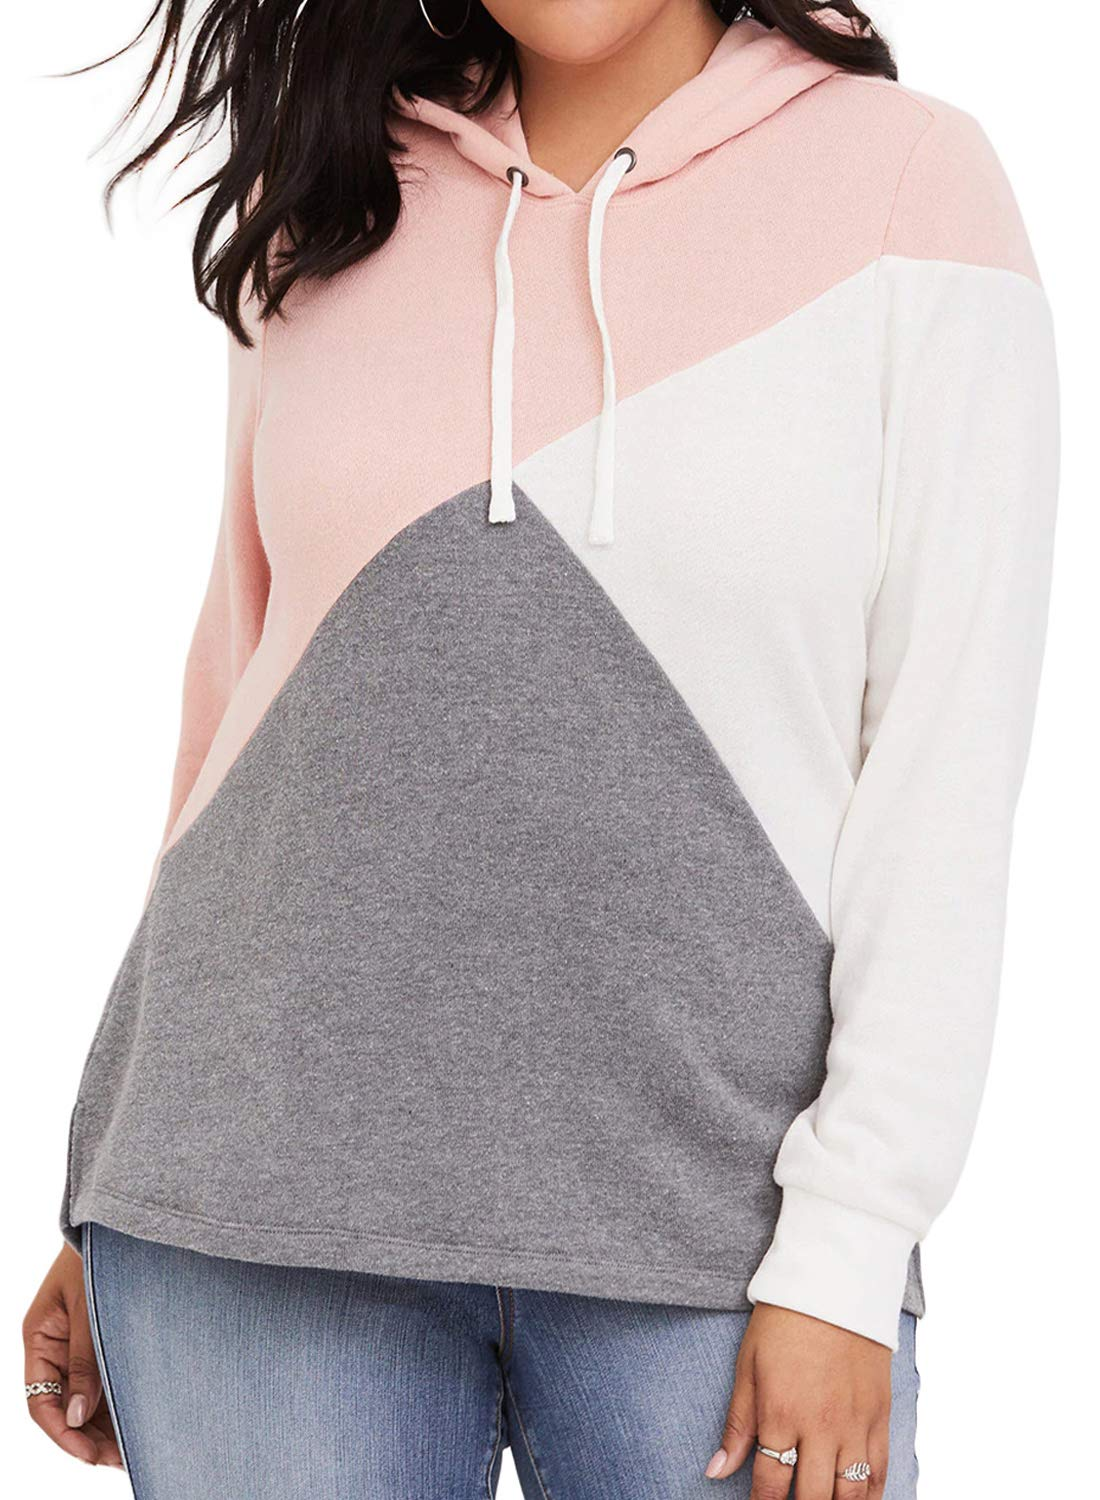 Dearlove Womens Long Sleeve Color Block Plus Size Hoodies Drawstring Hooded Sweatshirts Tunic Pullover Tops Jacket Oversized Outwear Pink 3X